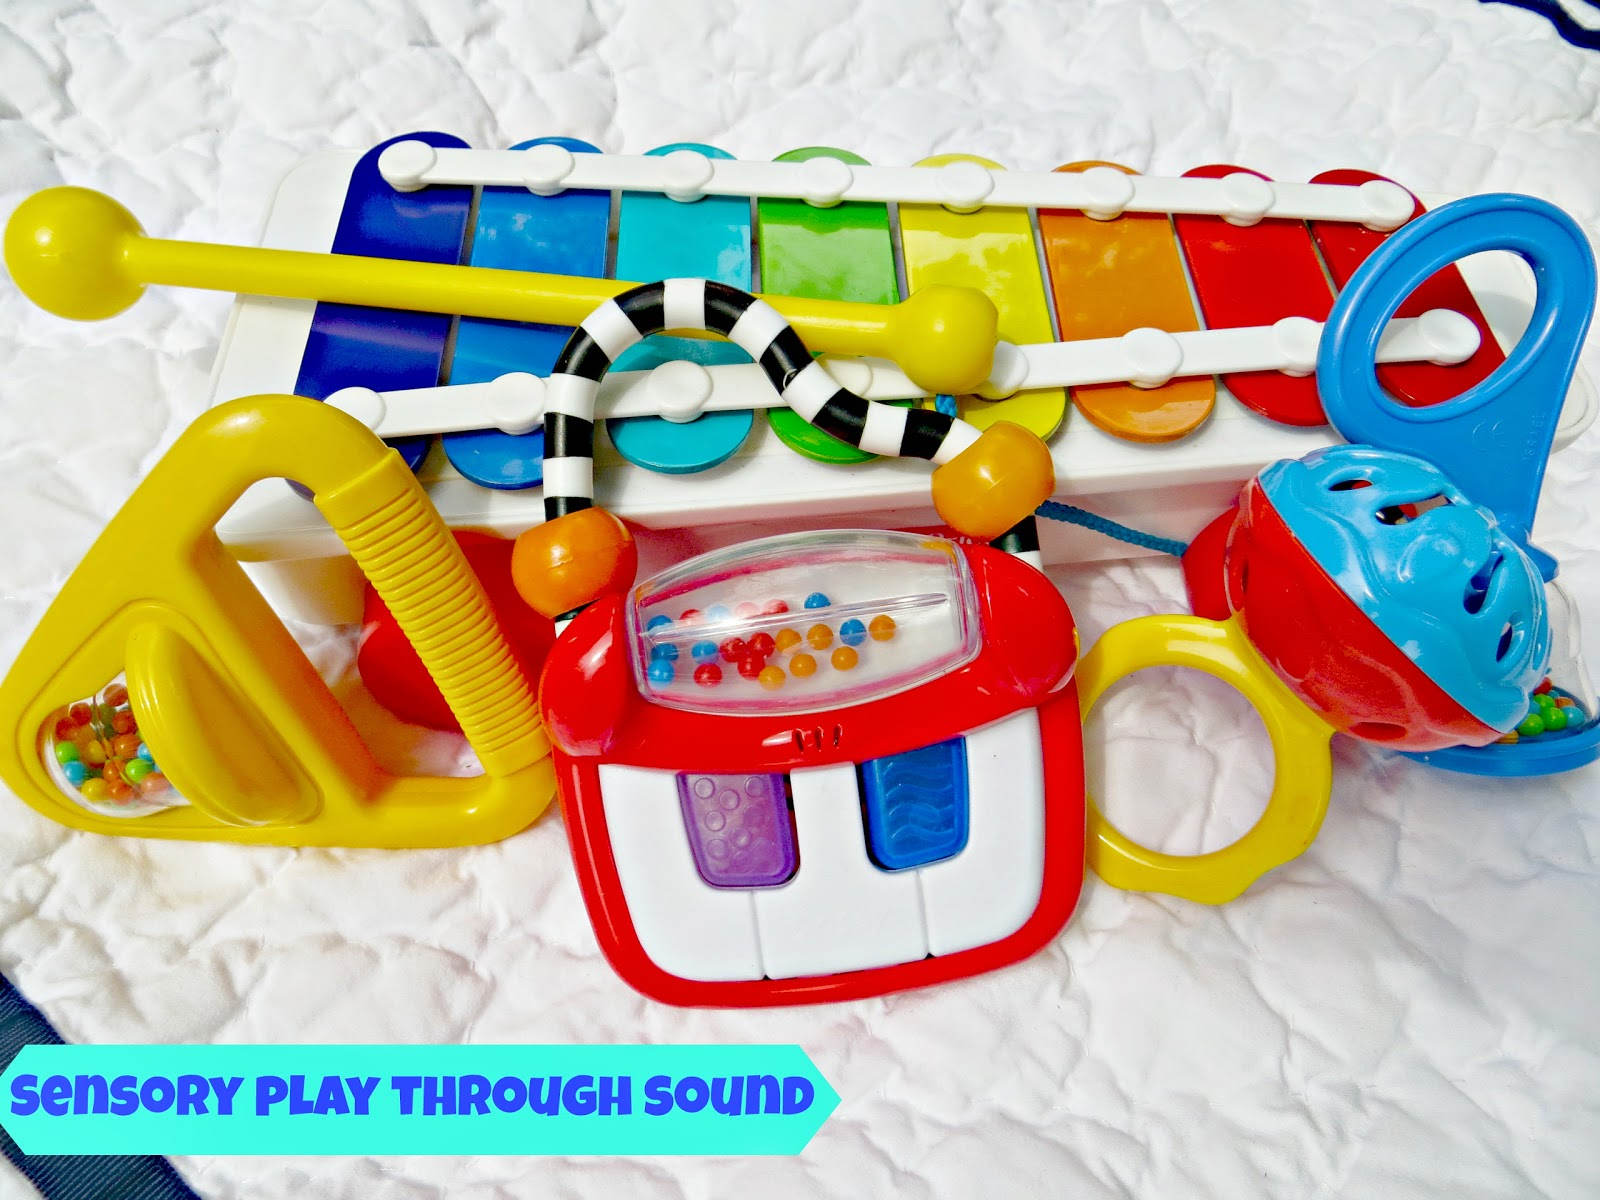 Sensory Play Through Sound